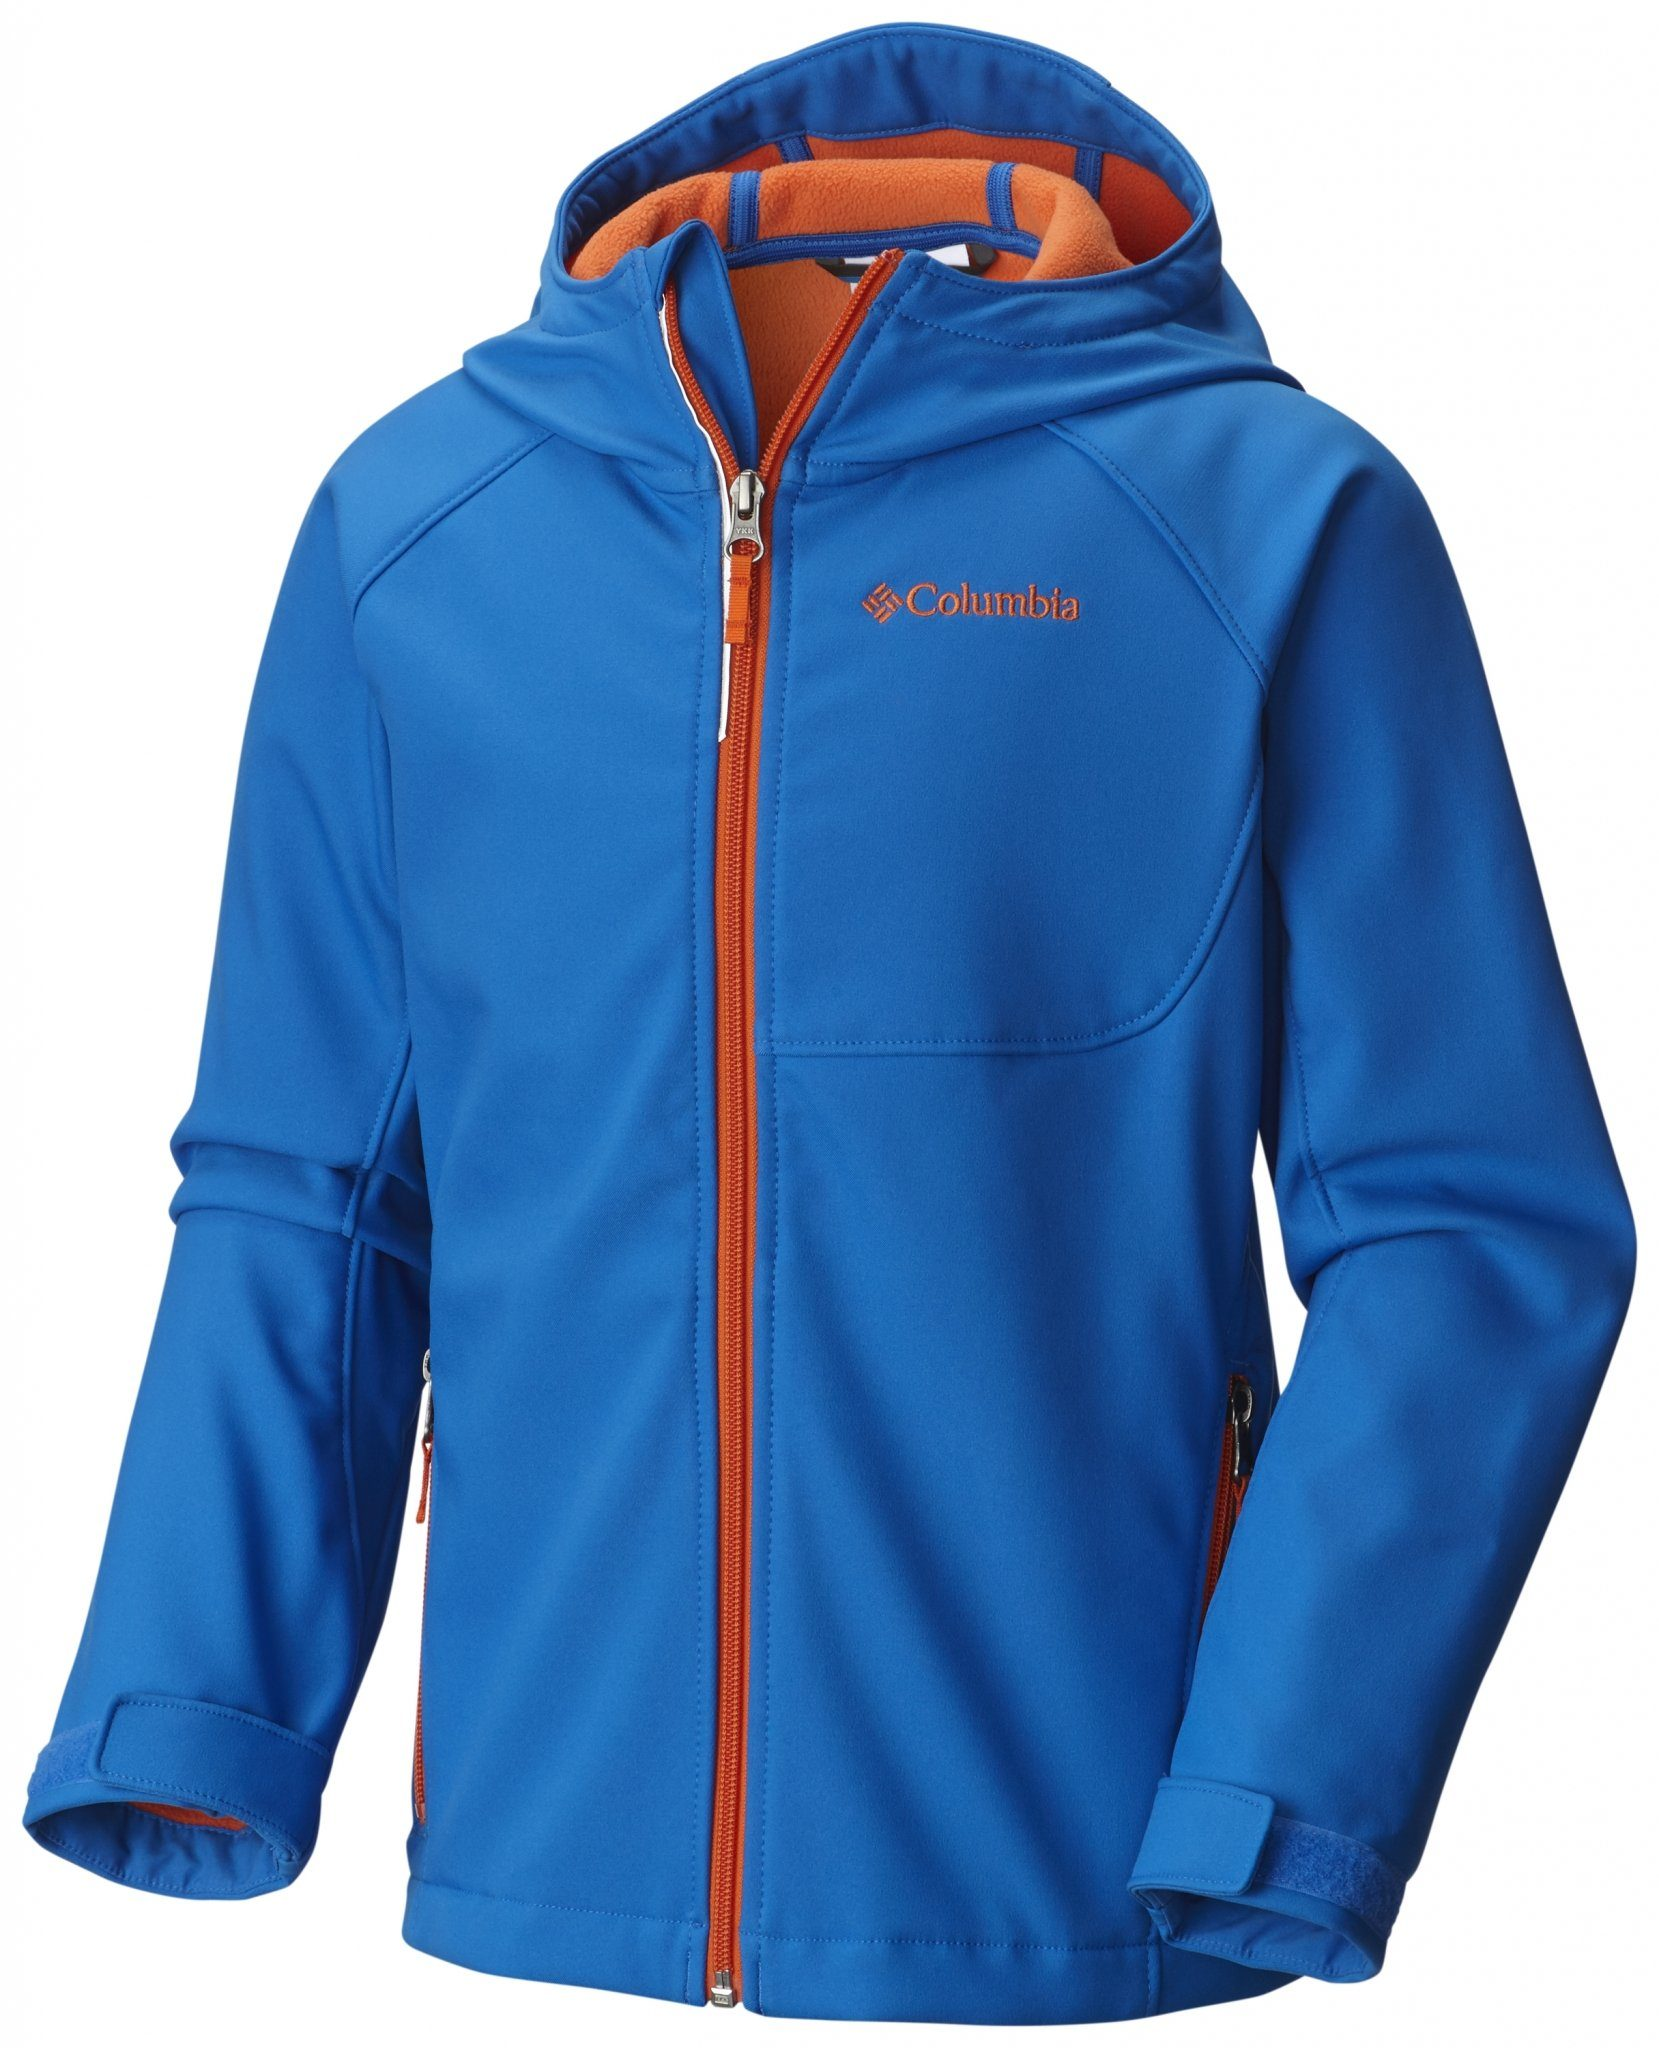 Columbia Outdoorjacke »Cascade Ridge Softshell Jacket Boys«